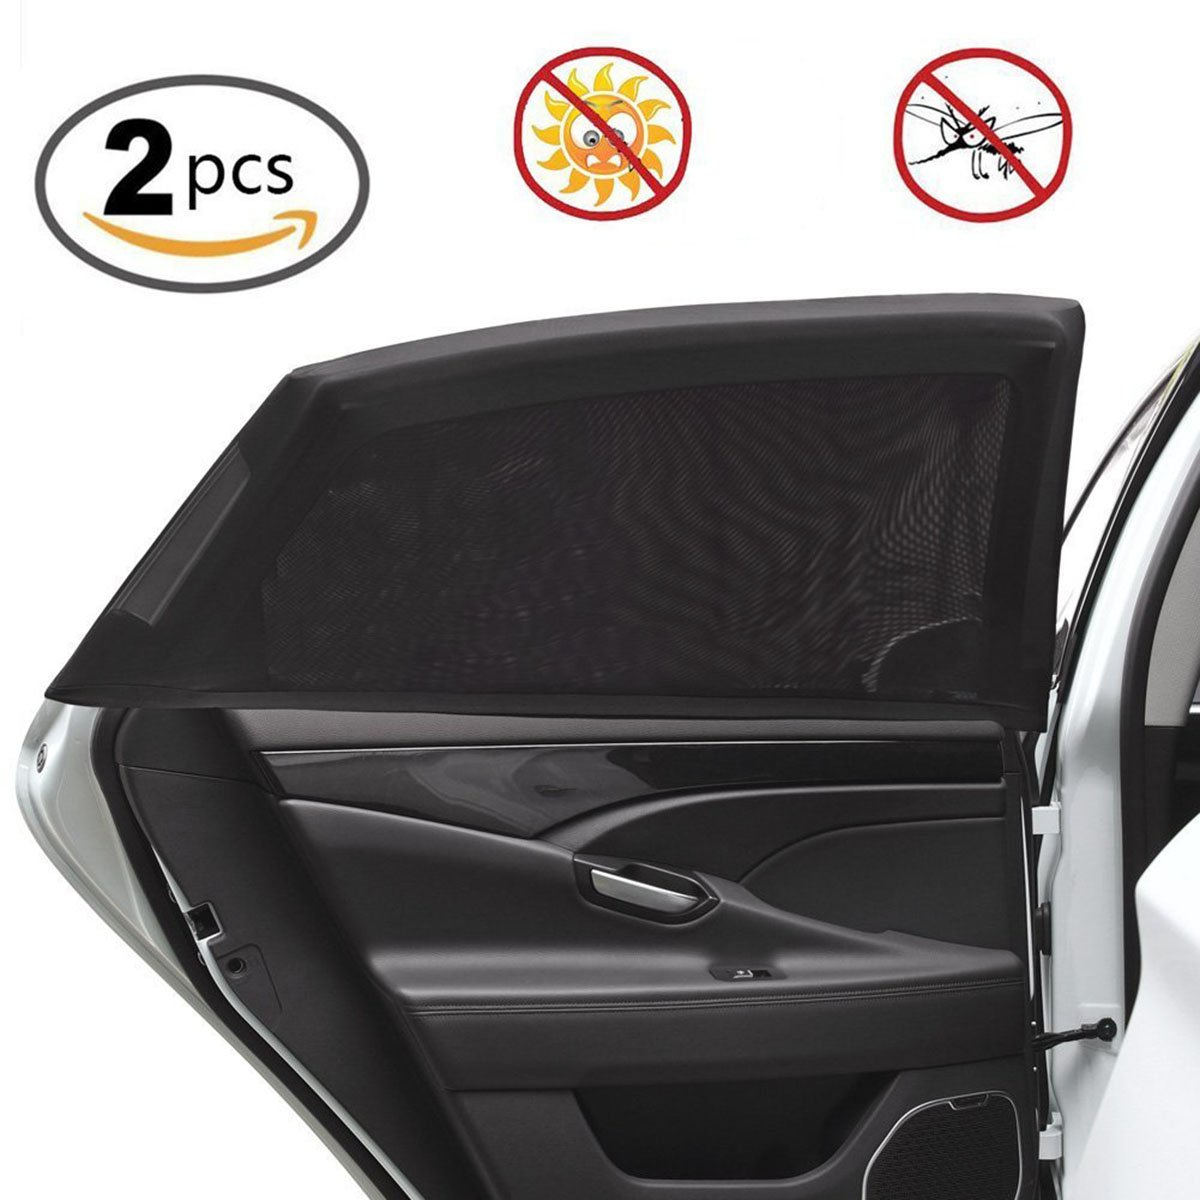 Safety Sun Shades for Anti-Mosquito Protection for Your Baby Women and Auto Interior Fit Most Cars//SUVs L Neonr Universal Car Side Window Shade Mesh 2 Pcs,Large